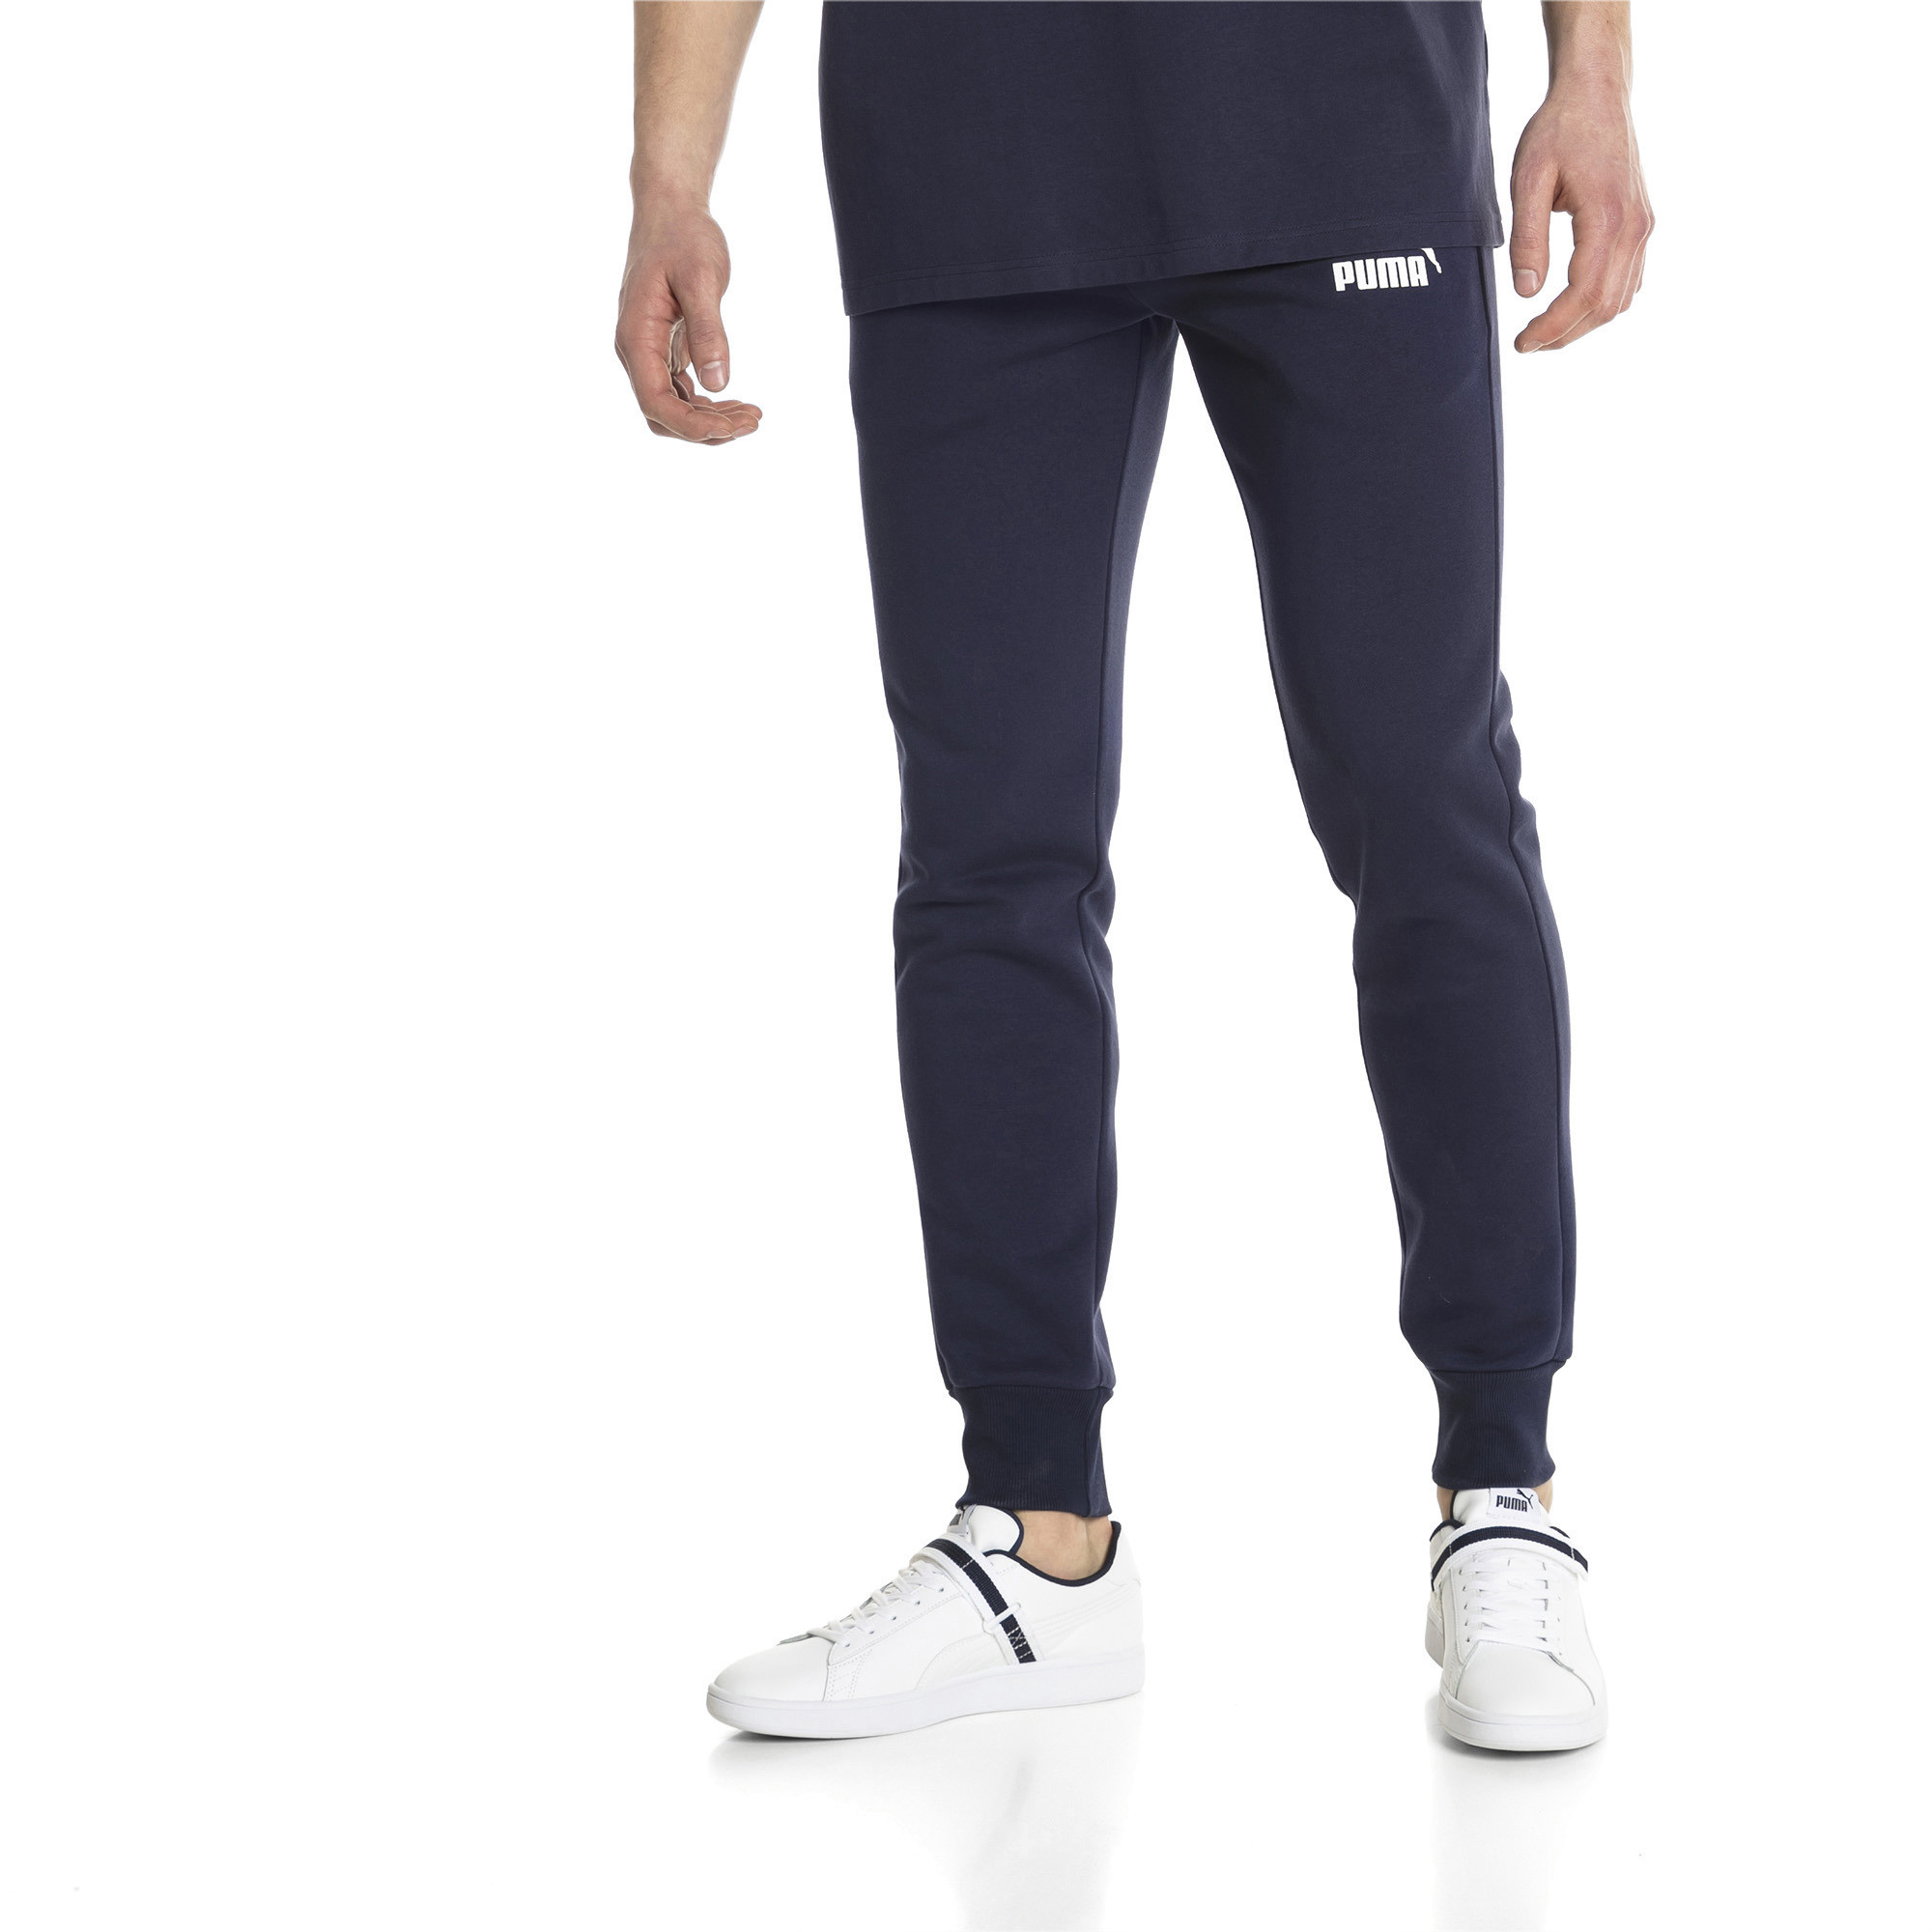 PUMA-Essentials-Men-039-s-Fleece-Knit-Pants-Men-Knitted-Pants-Basics thumbnail 6